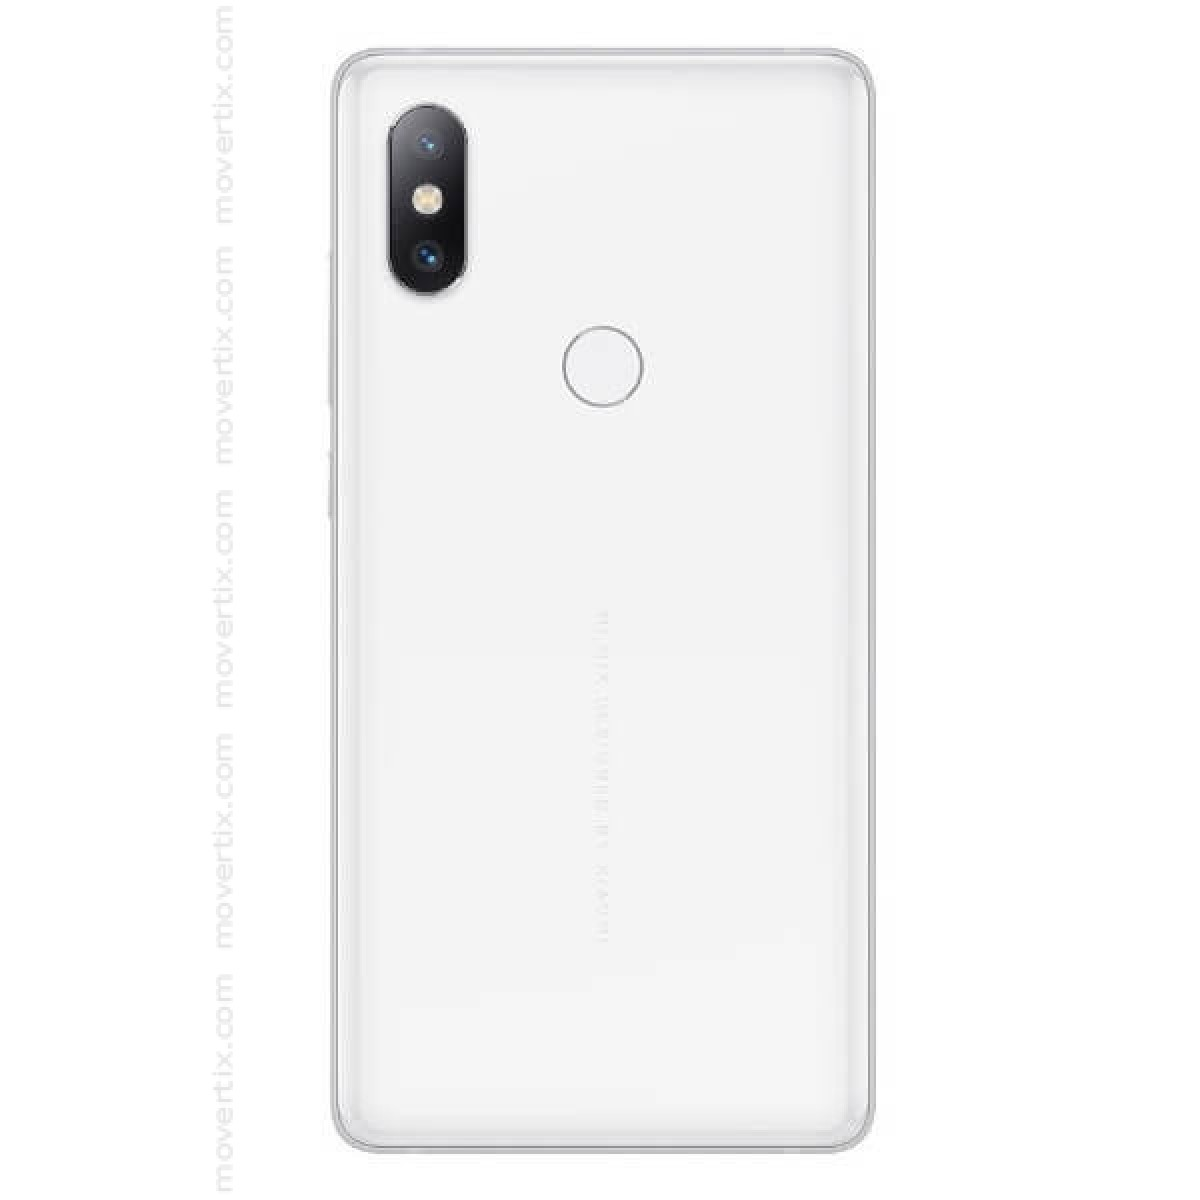 The Xiaomi Mi Mix 2S in white color has an exclusive curved ceramic design  and all screen, dual camera with AI and Dual Pixel, Octa-core processor, ...